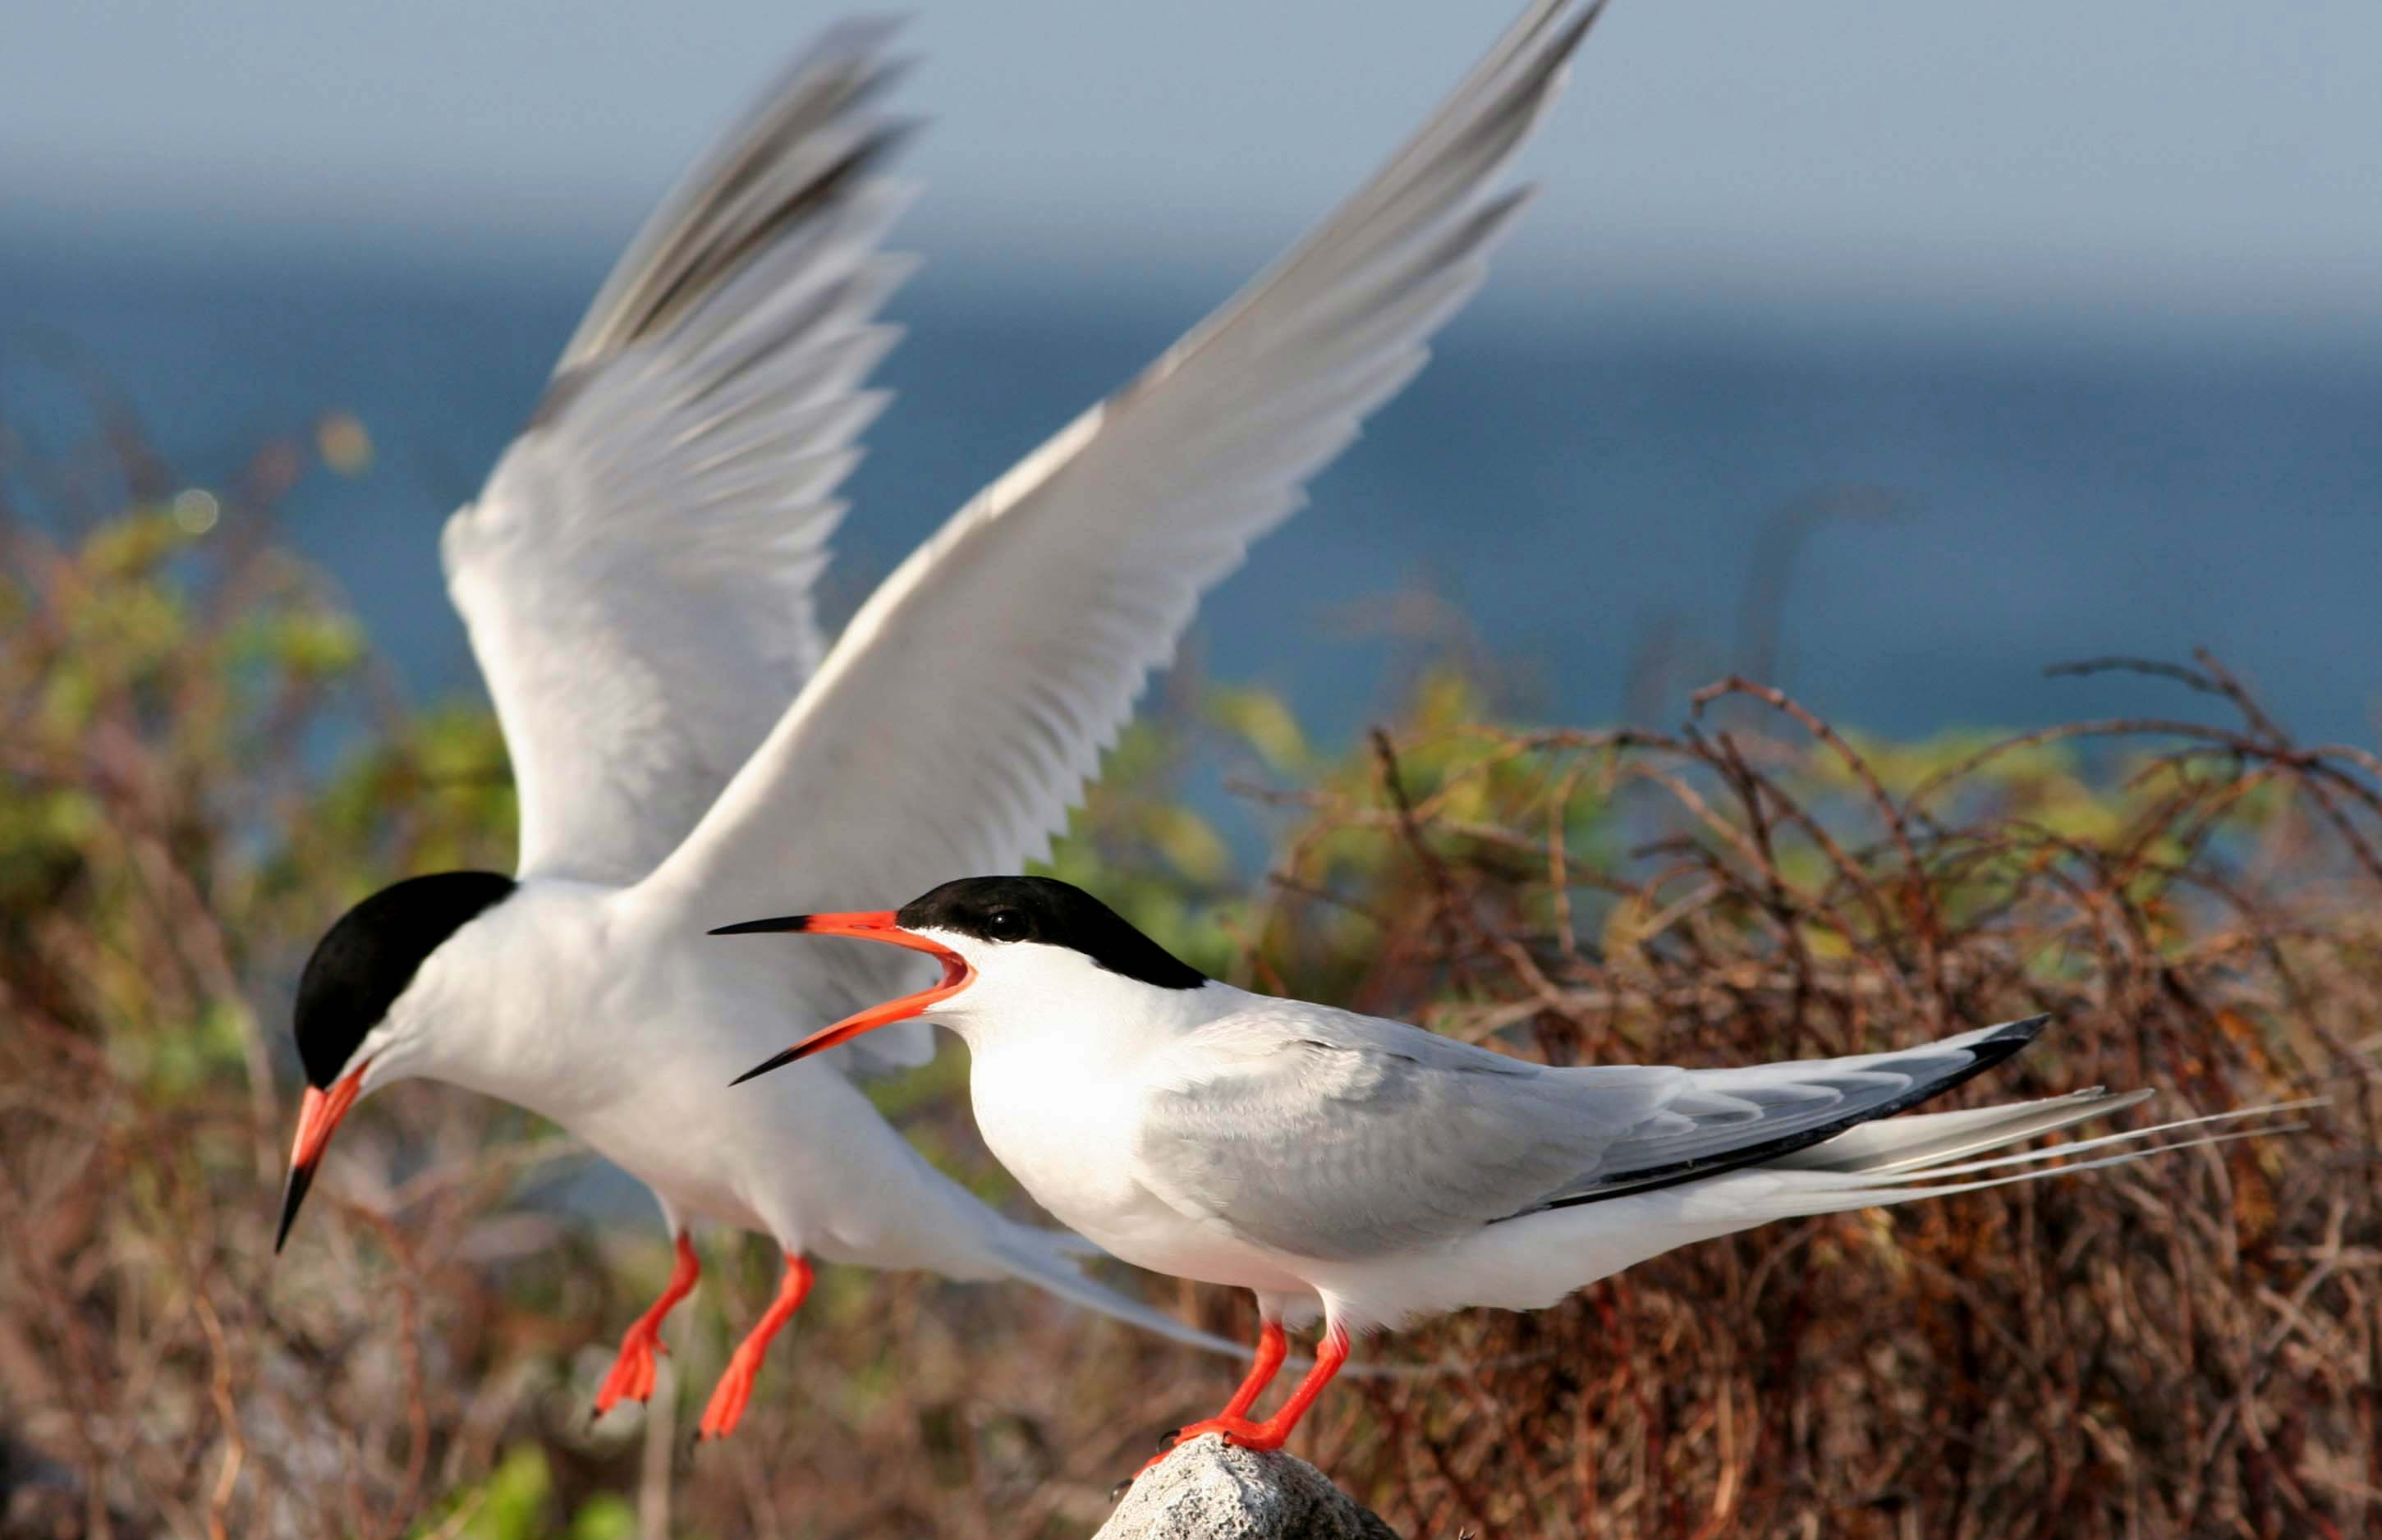 a look at the endangerment of the roseate tern species